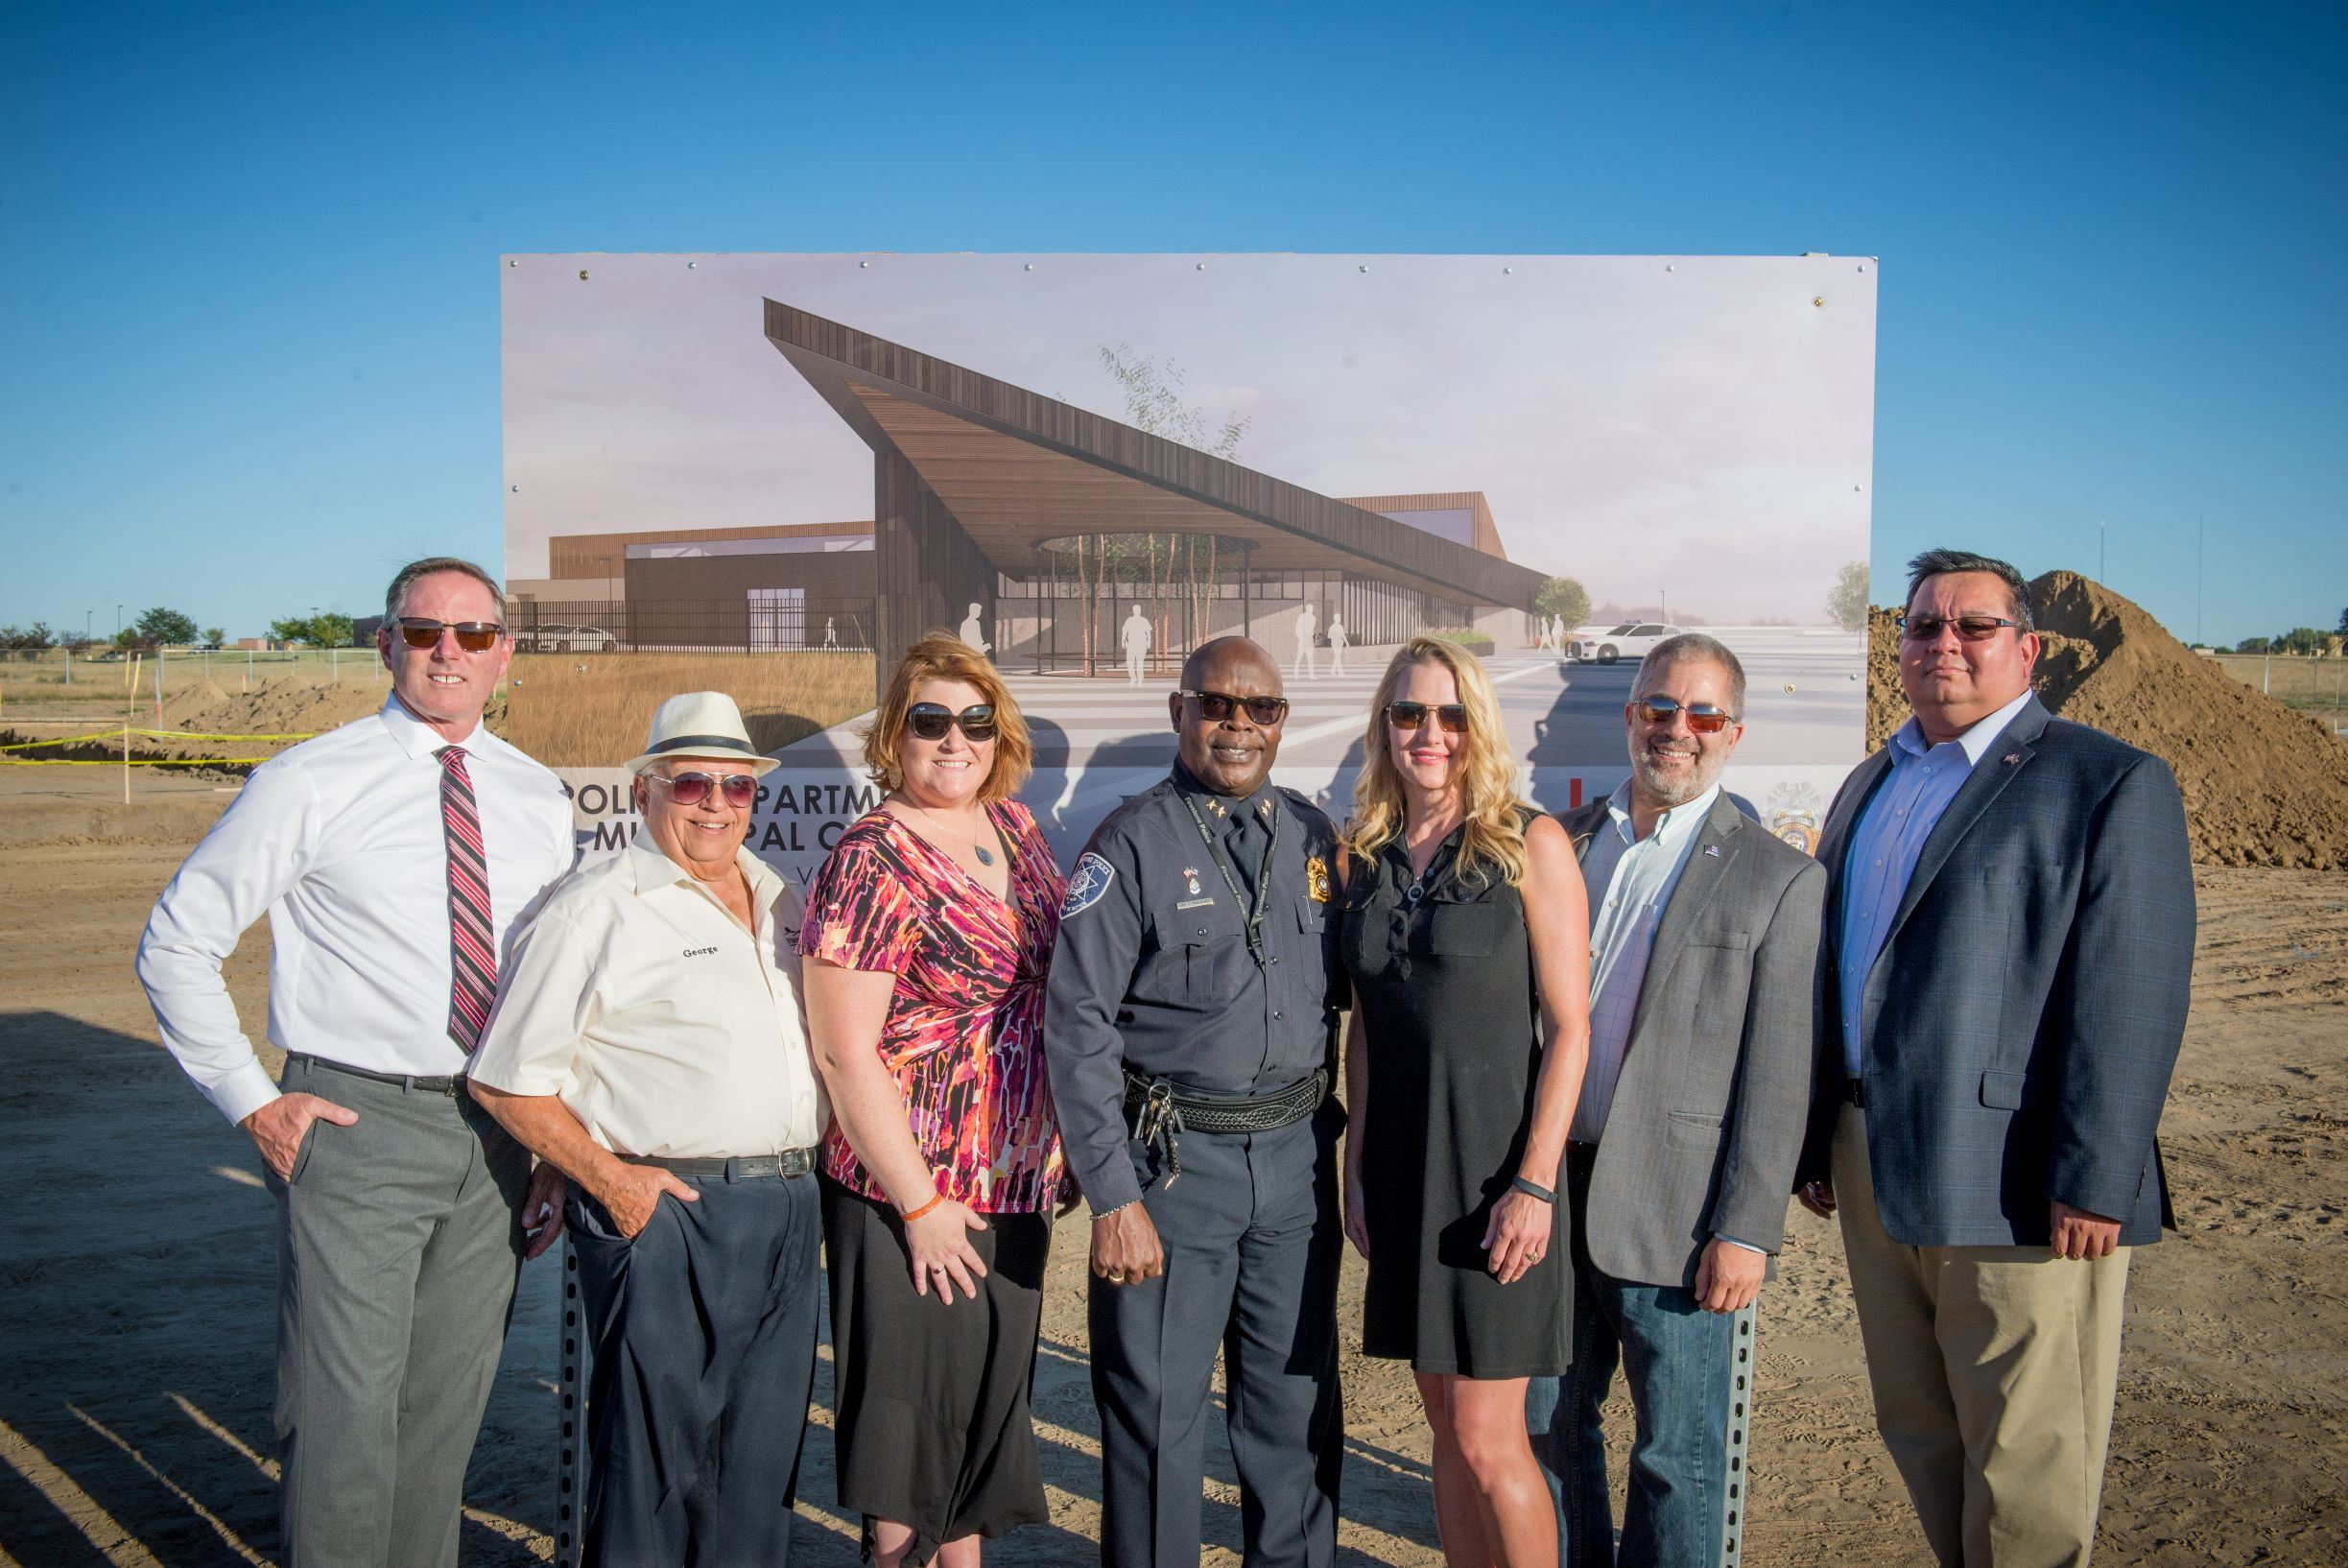 FirestonePDGroundbreaking_Sept2018